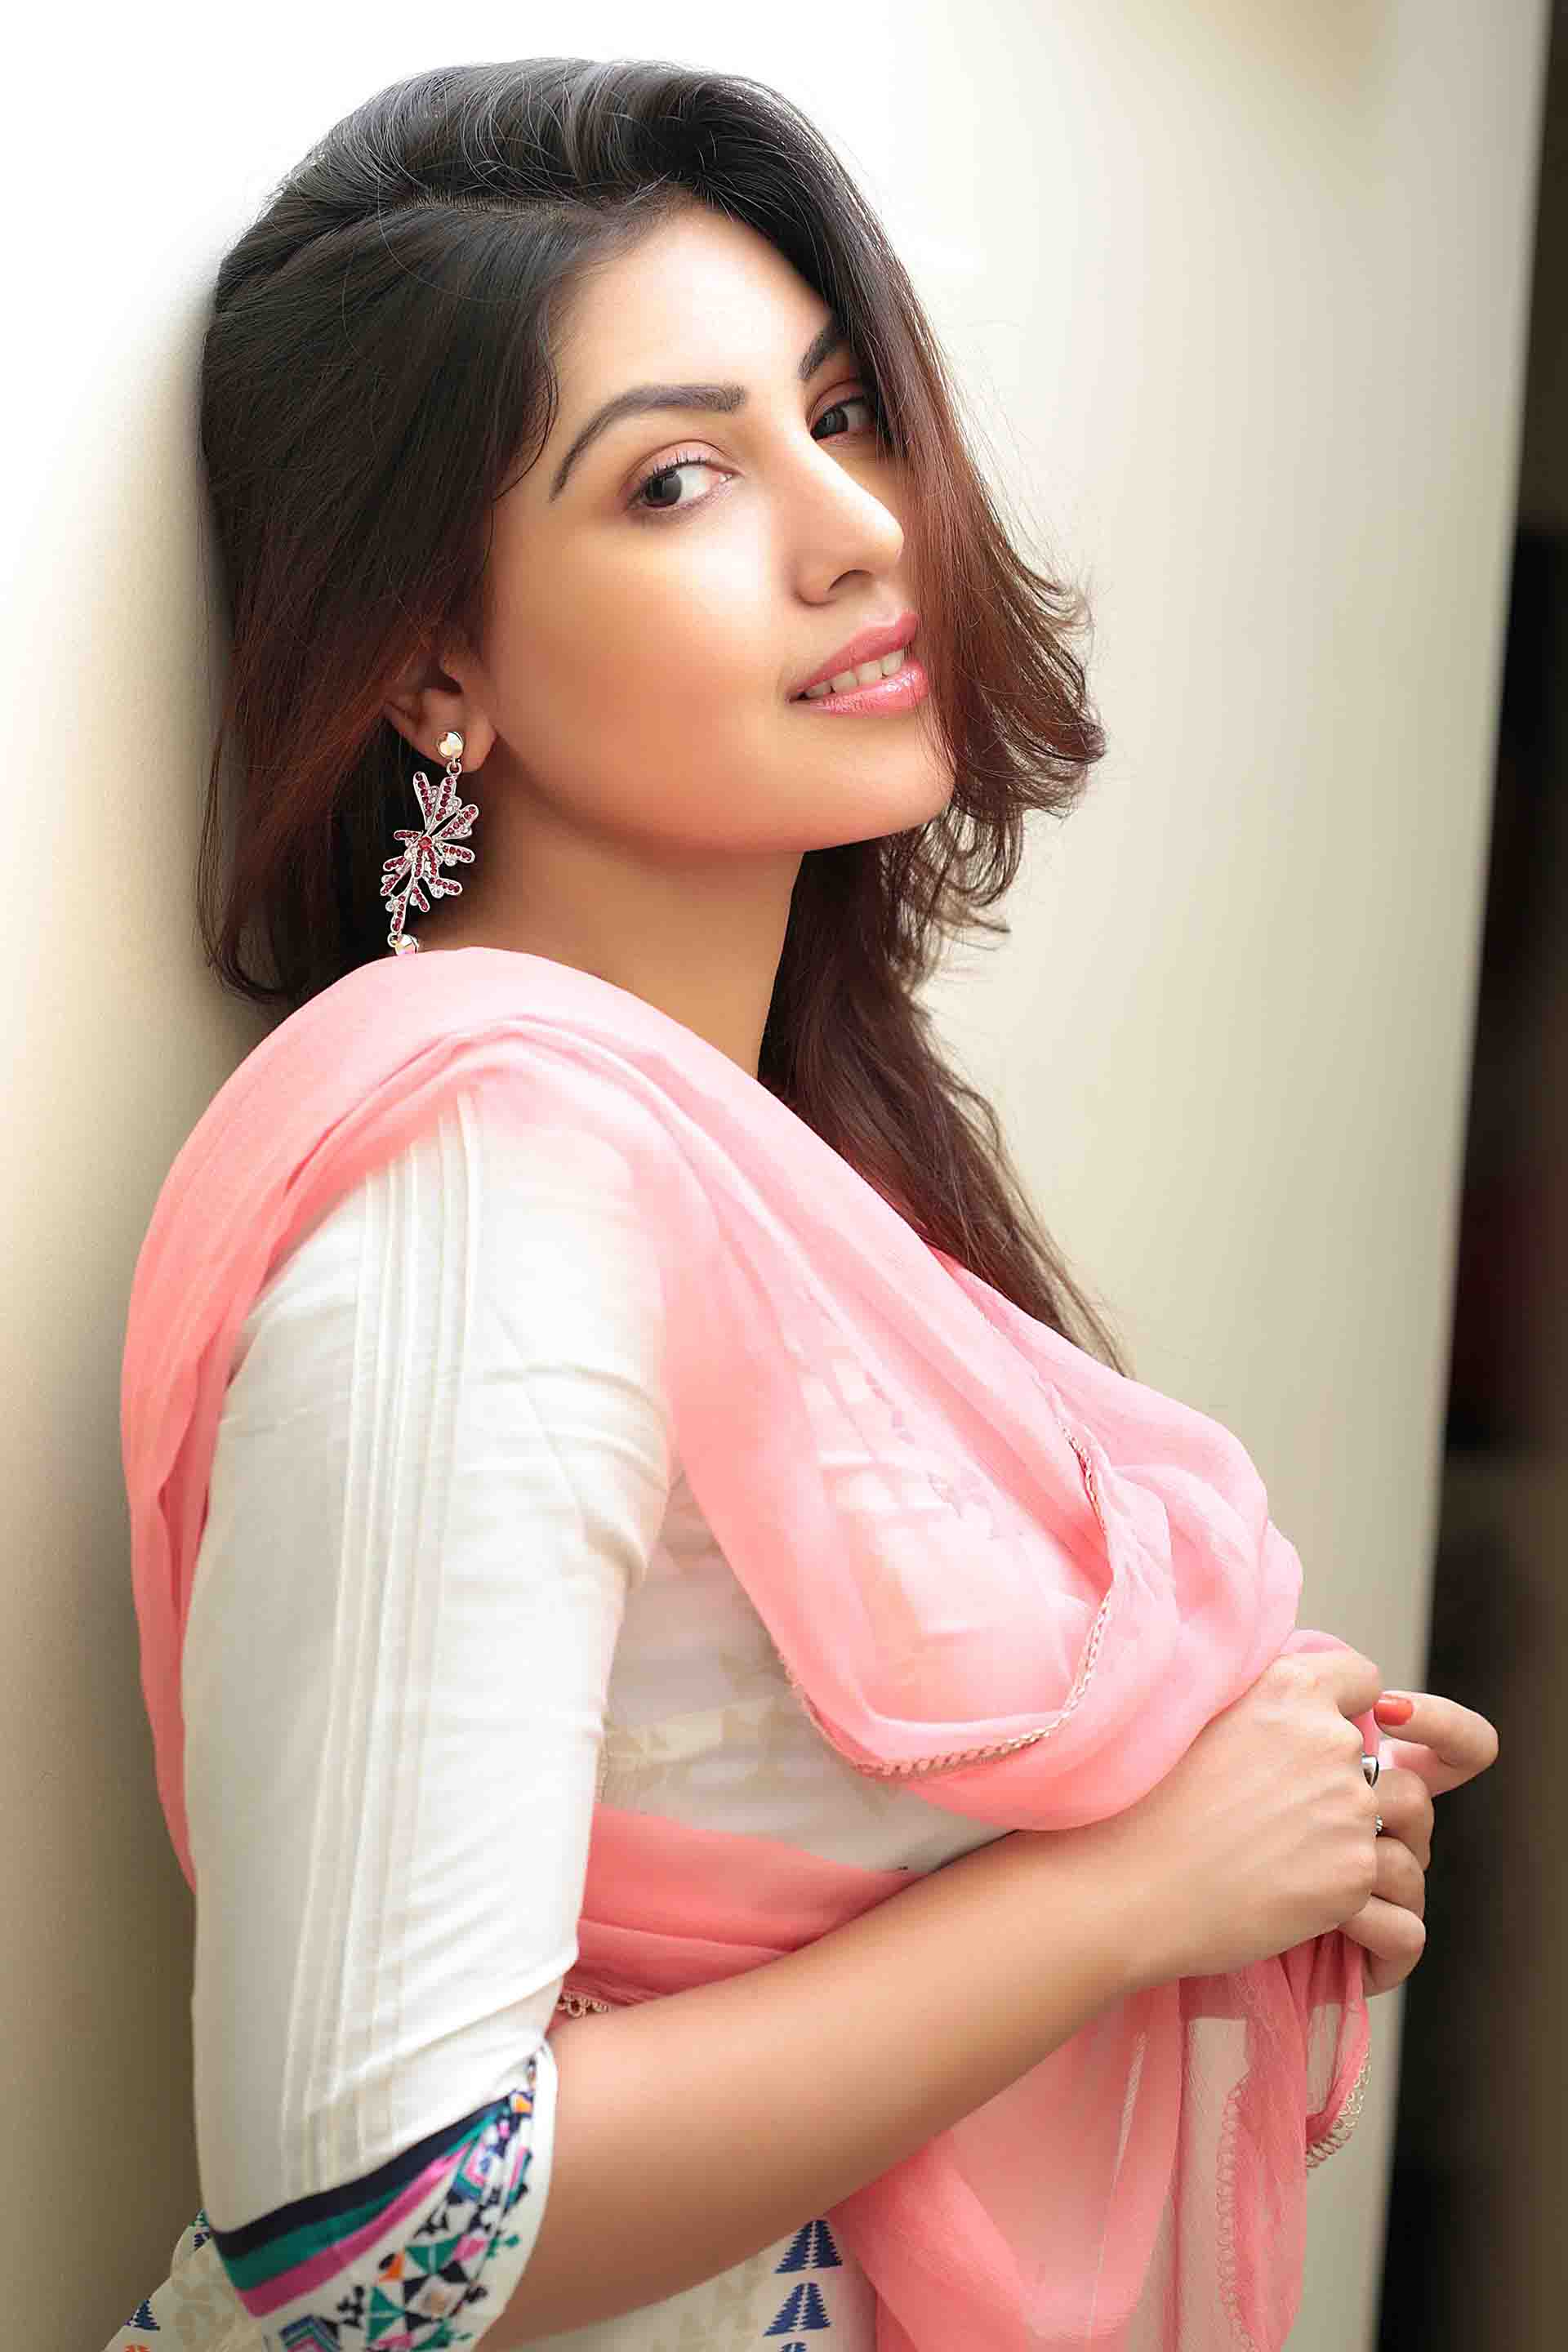 Komal jha romantic photos